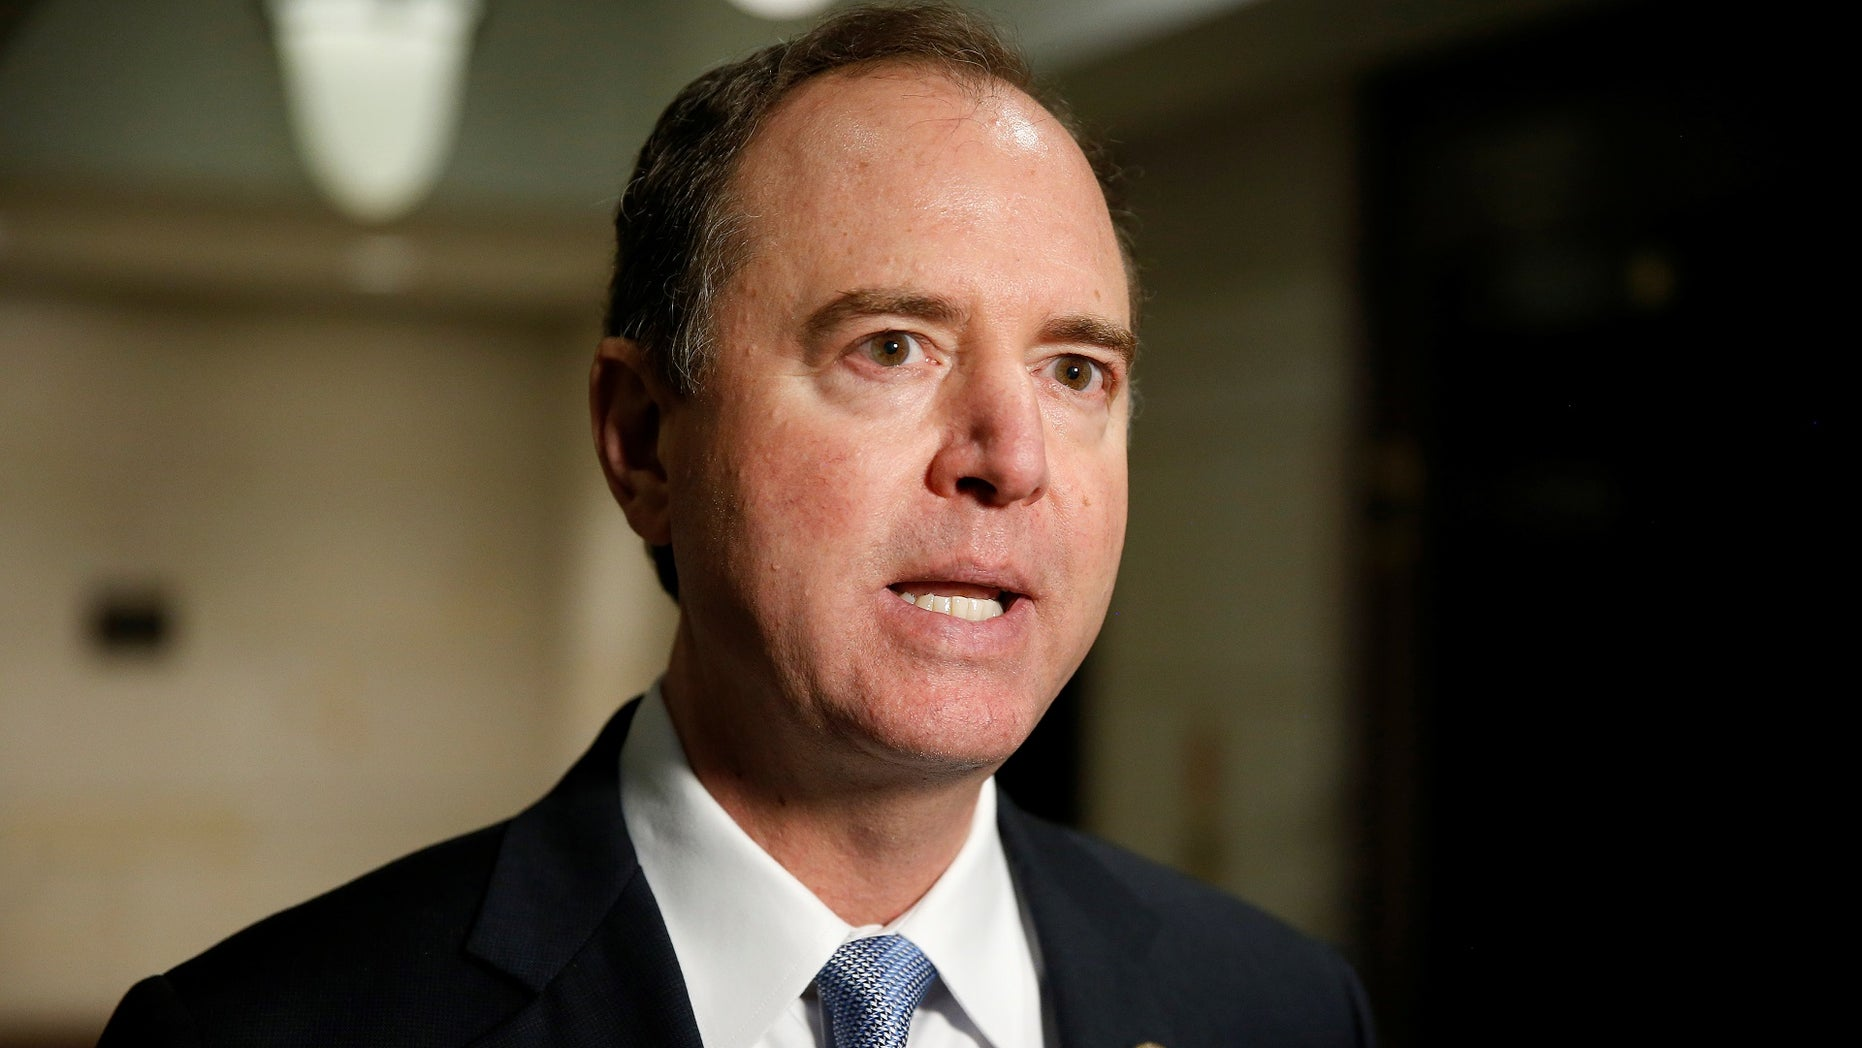 Rep. Adam Schiff refuses to back down on his condemnation of President Trump, doubling down for the second time in a week that that there is evidence of collusion between Trump and Russians.